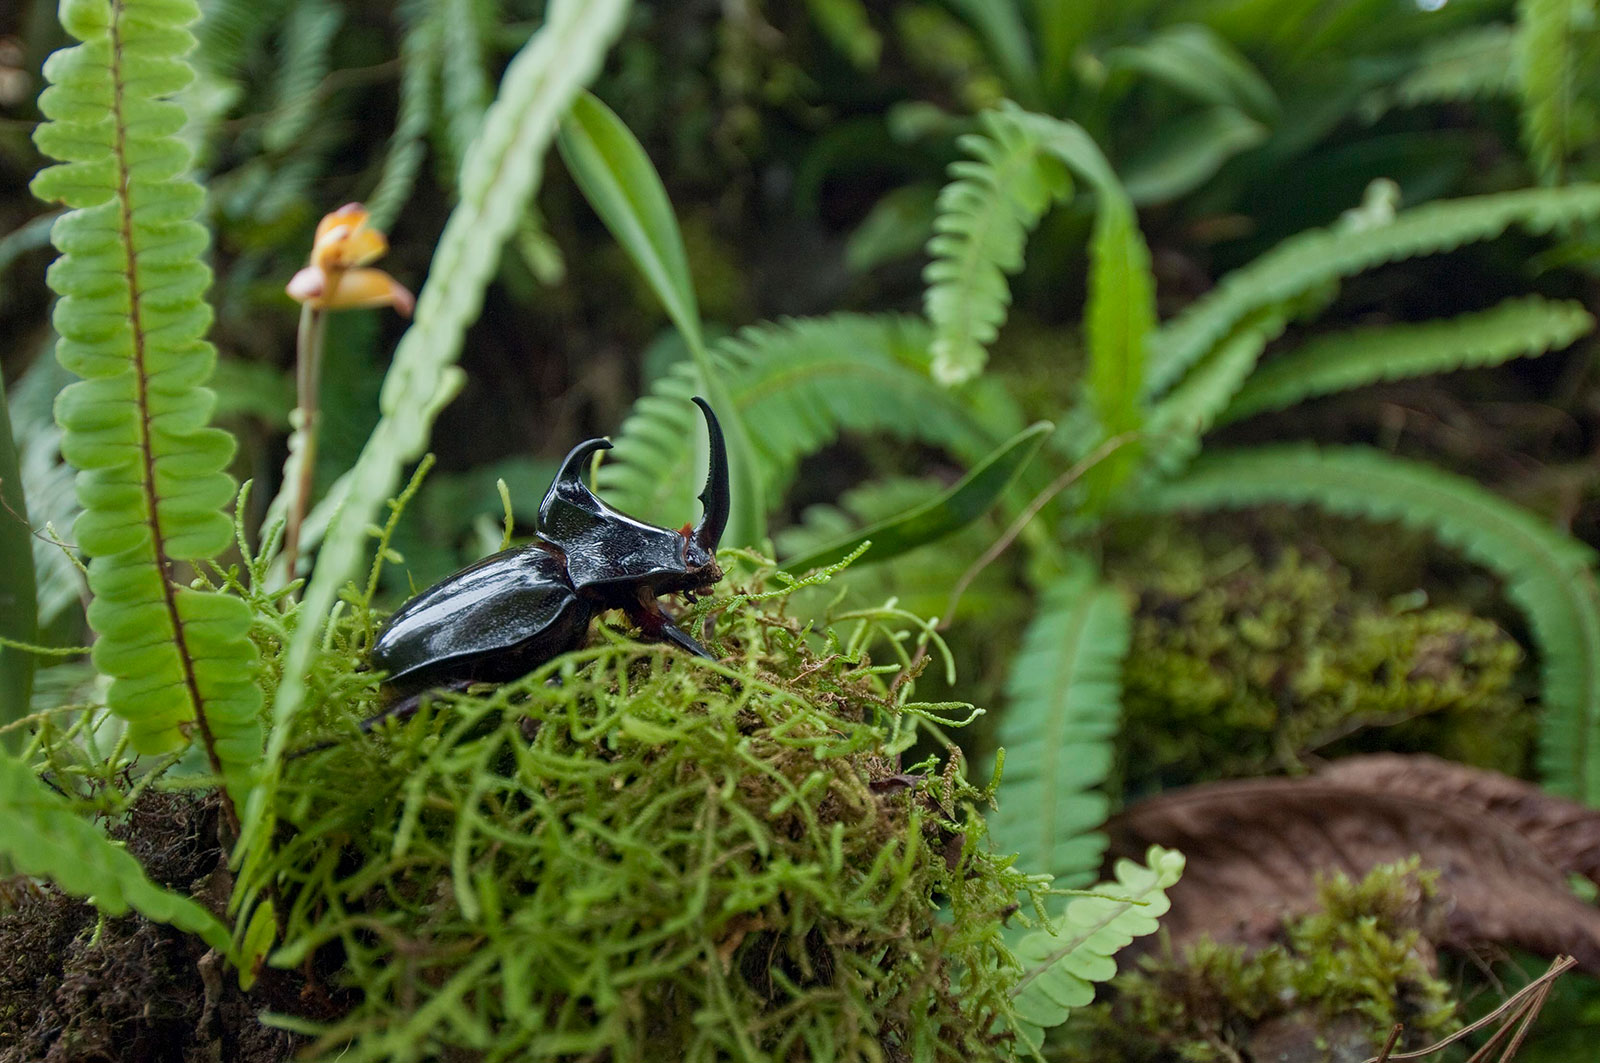 A rhinoceros beetle crawls through the forest